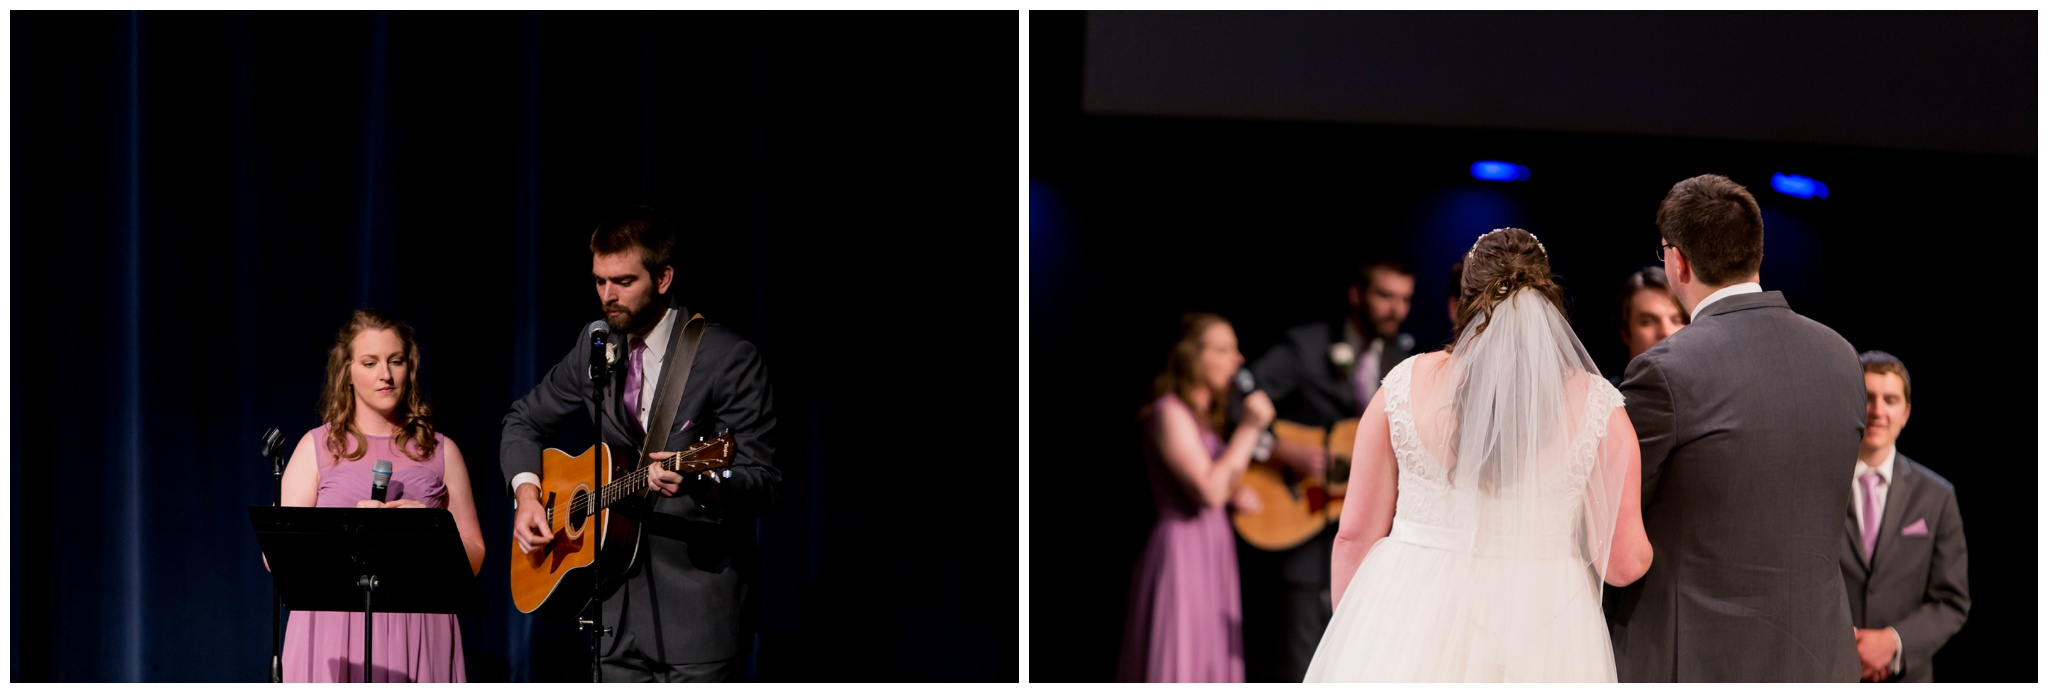 bride's brother and sister-in-law lead worship during wedding ceremony at Crossroads Community Church in Kokomo Indiana